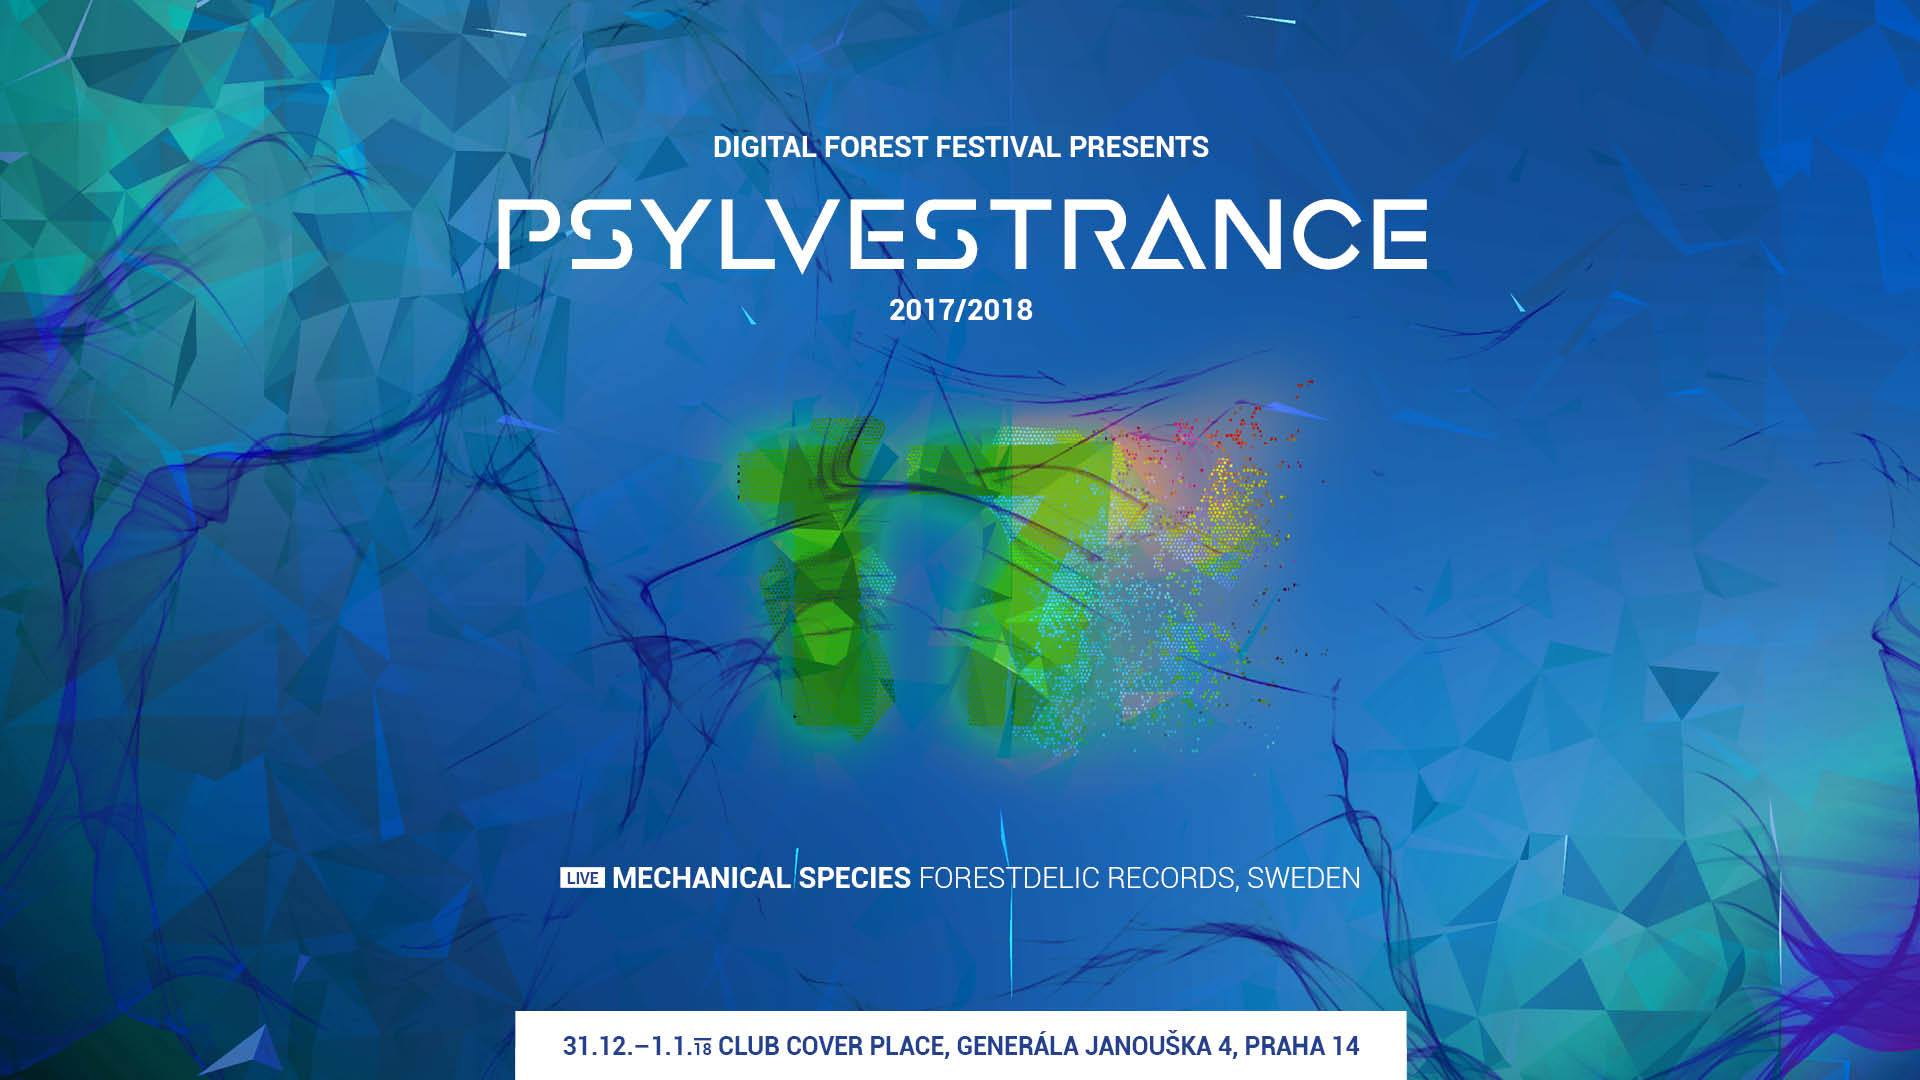 Digital Forest Festival presents Psylvestrance 2017/2018 flyer